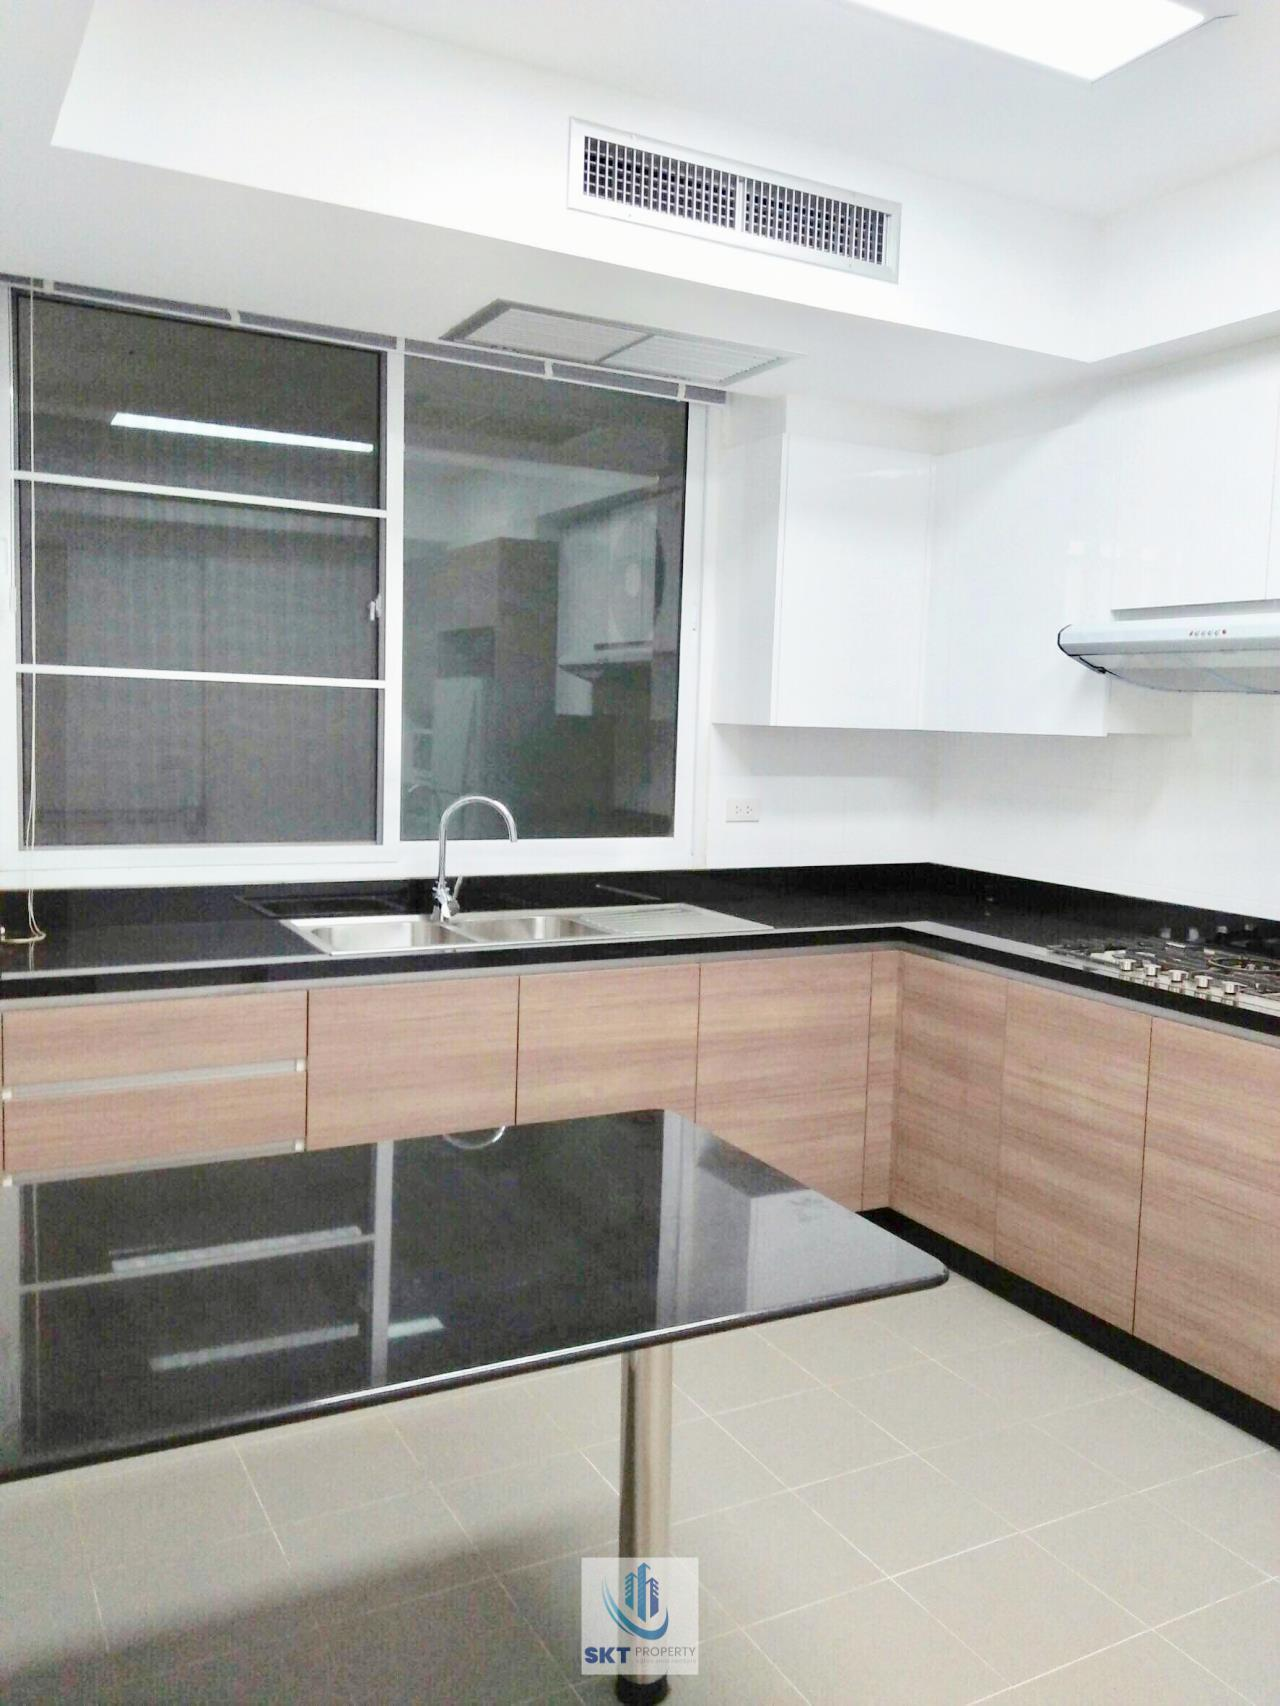 Sukritta Property Agency's For Rent PET FRIENDLY APARTMENT Villa Insaf Near Bts Nana 6